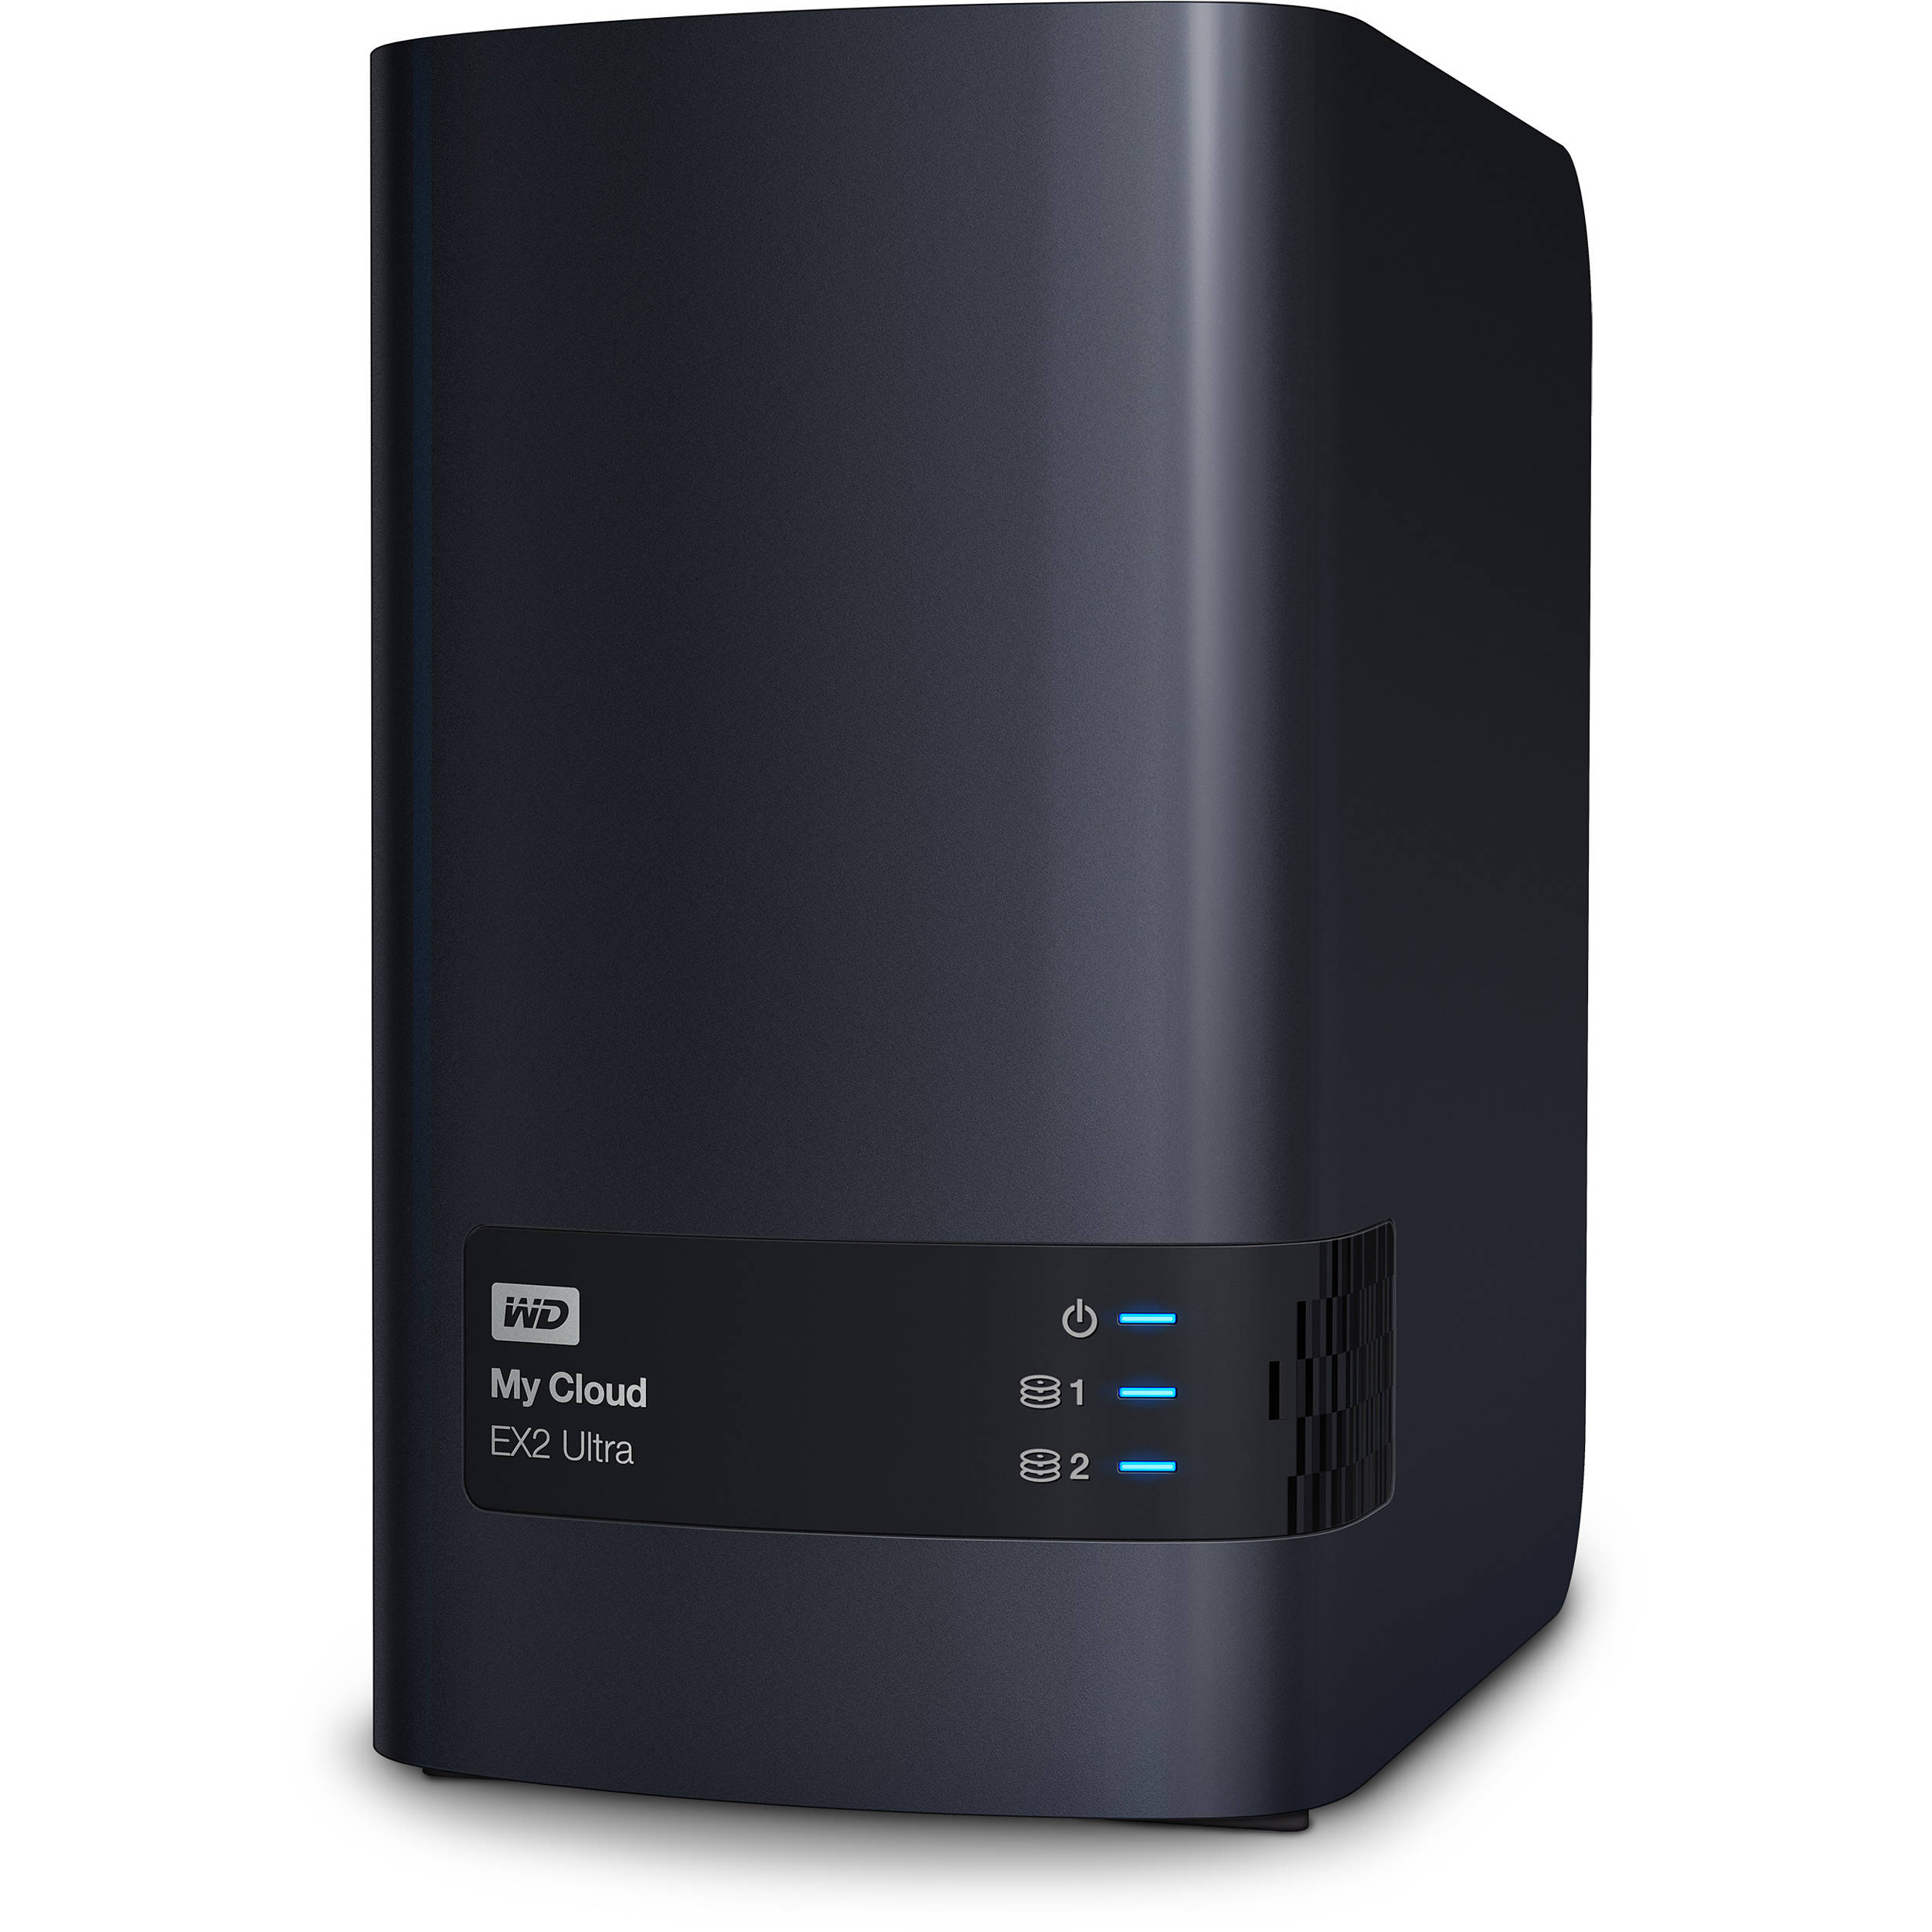 Winchester (külső) Western Digital 4TB My Cloud EX2 Ultra RJ45 Black